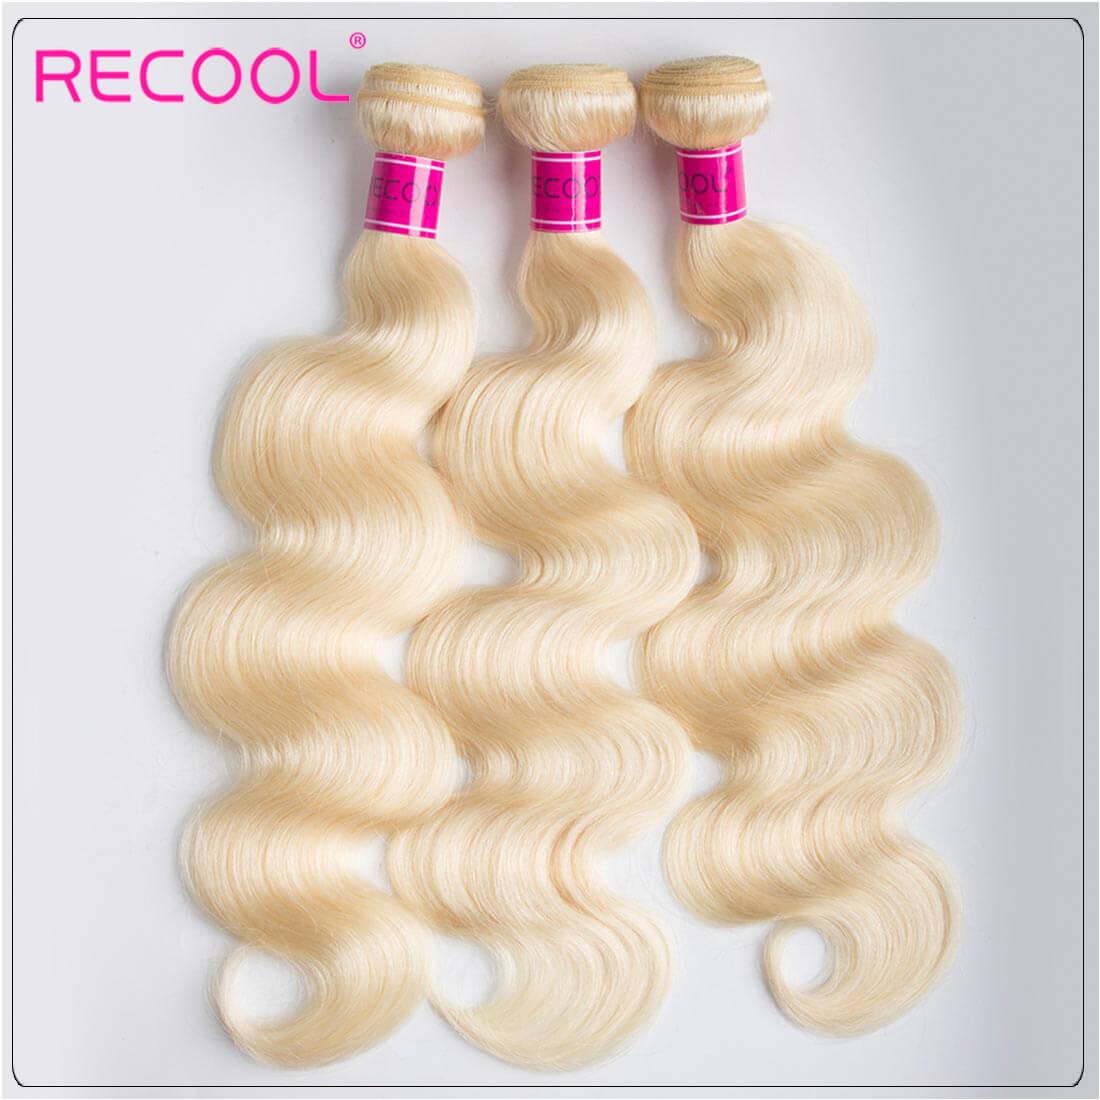 Blonde Hair Bundles 613 Virgin Hair Body Wave, 100% Virgin Blonde Human Hair Weave Body Wave Bundles 3